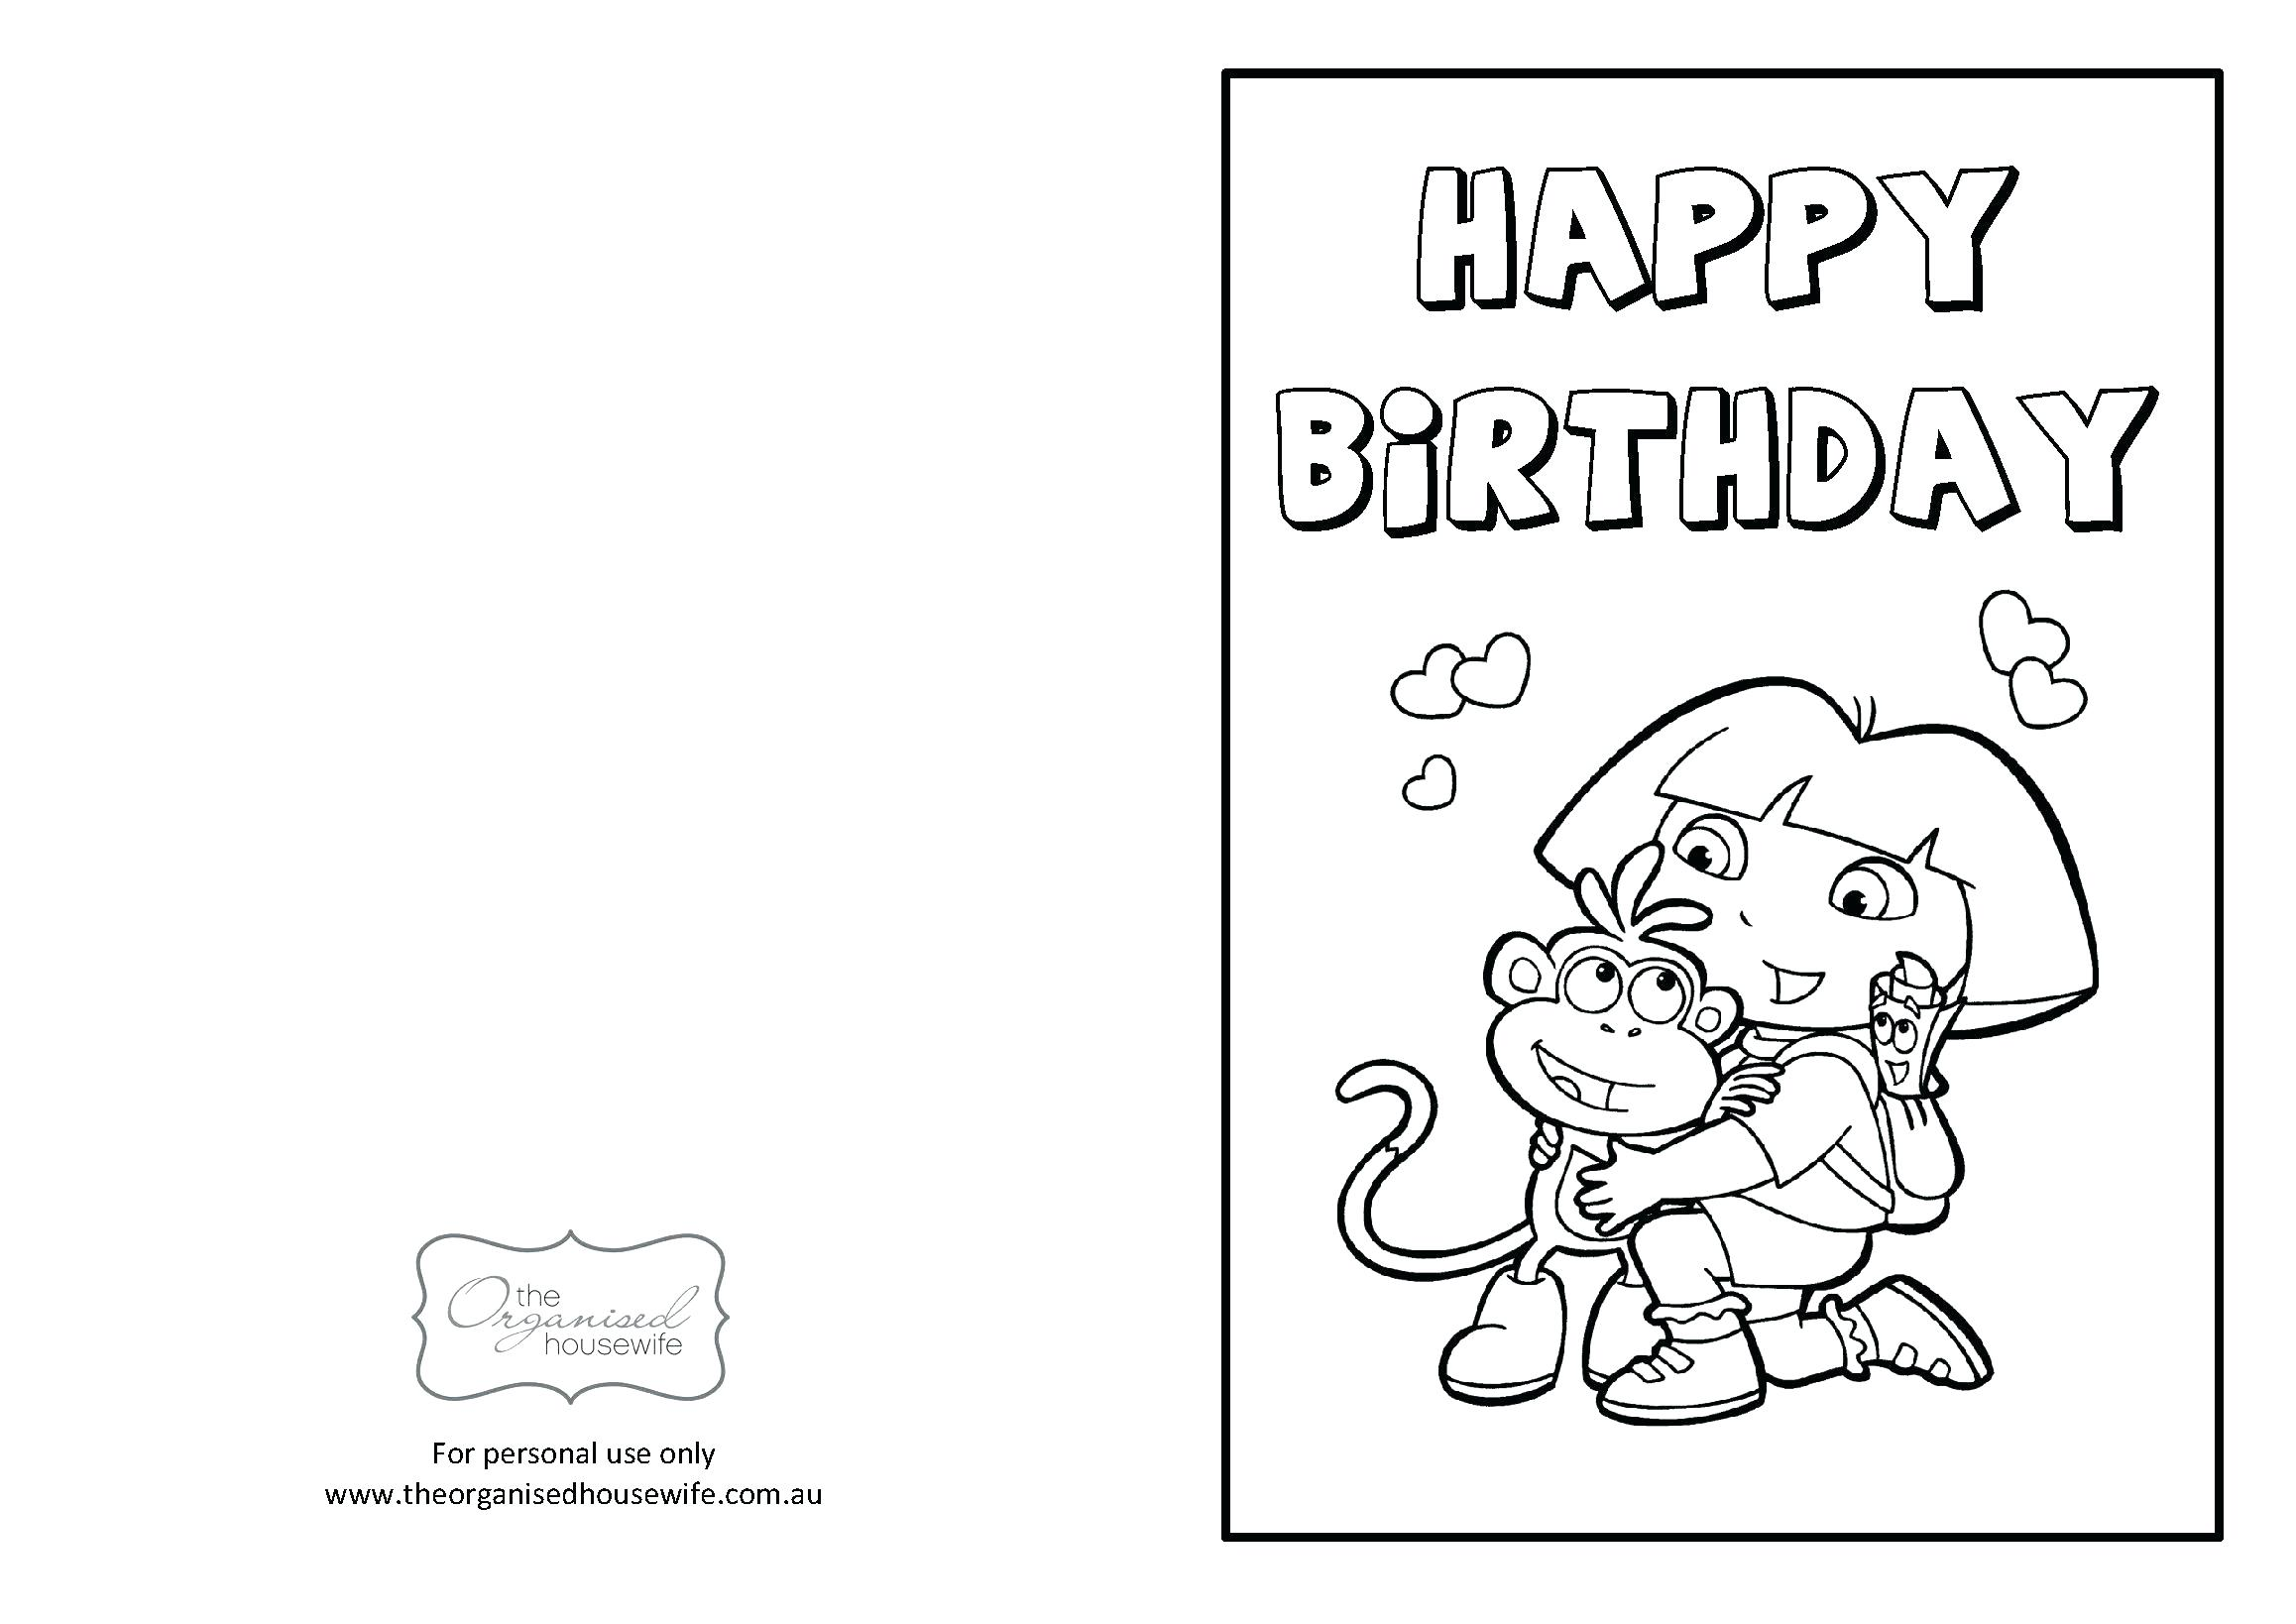 birthday cards to color for kids ; mother-day-card-to-color-mothers-colouring-pages-printable-uk-birthday-cards-to-color-free-coloring-kids